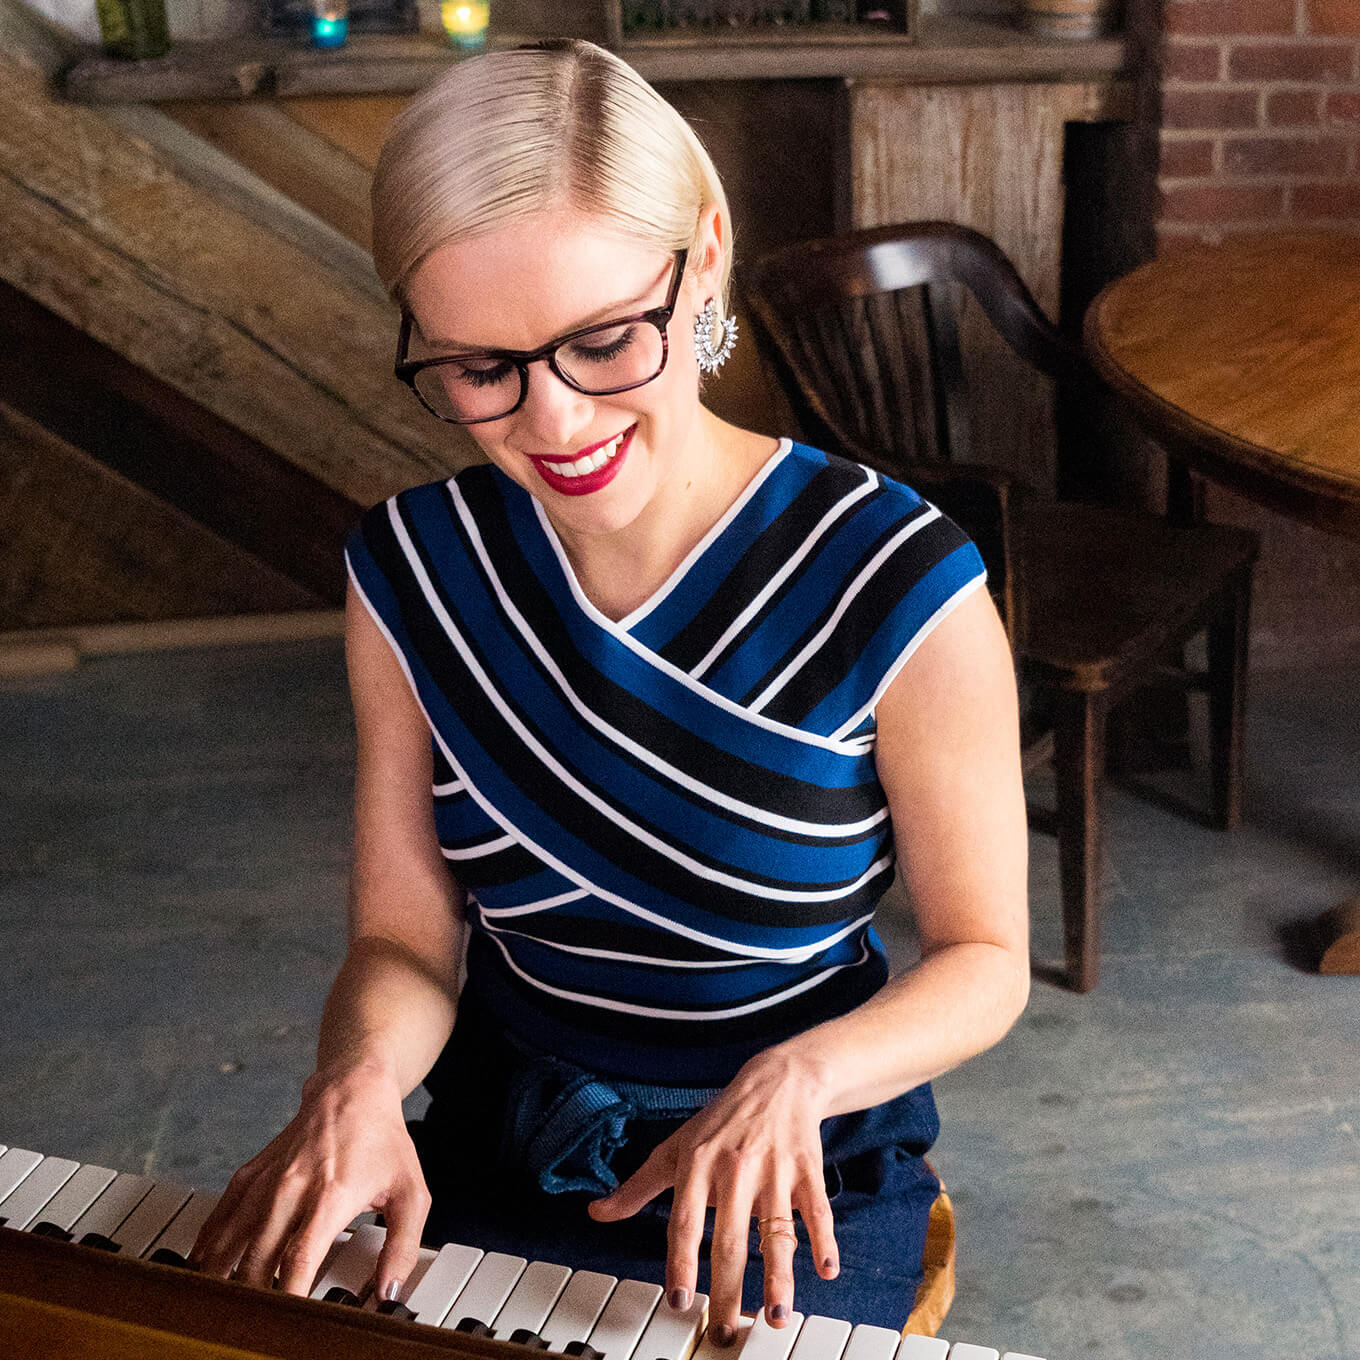 Brooklyn-based soul singer Grace Weber plays the piano wearing the Ain eyeglasses in purple tortoiseshell from the Zenni Metropolitan Collection.